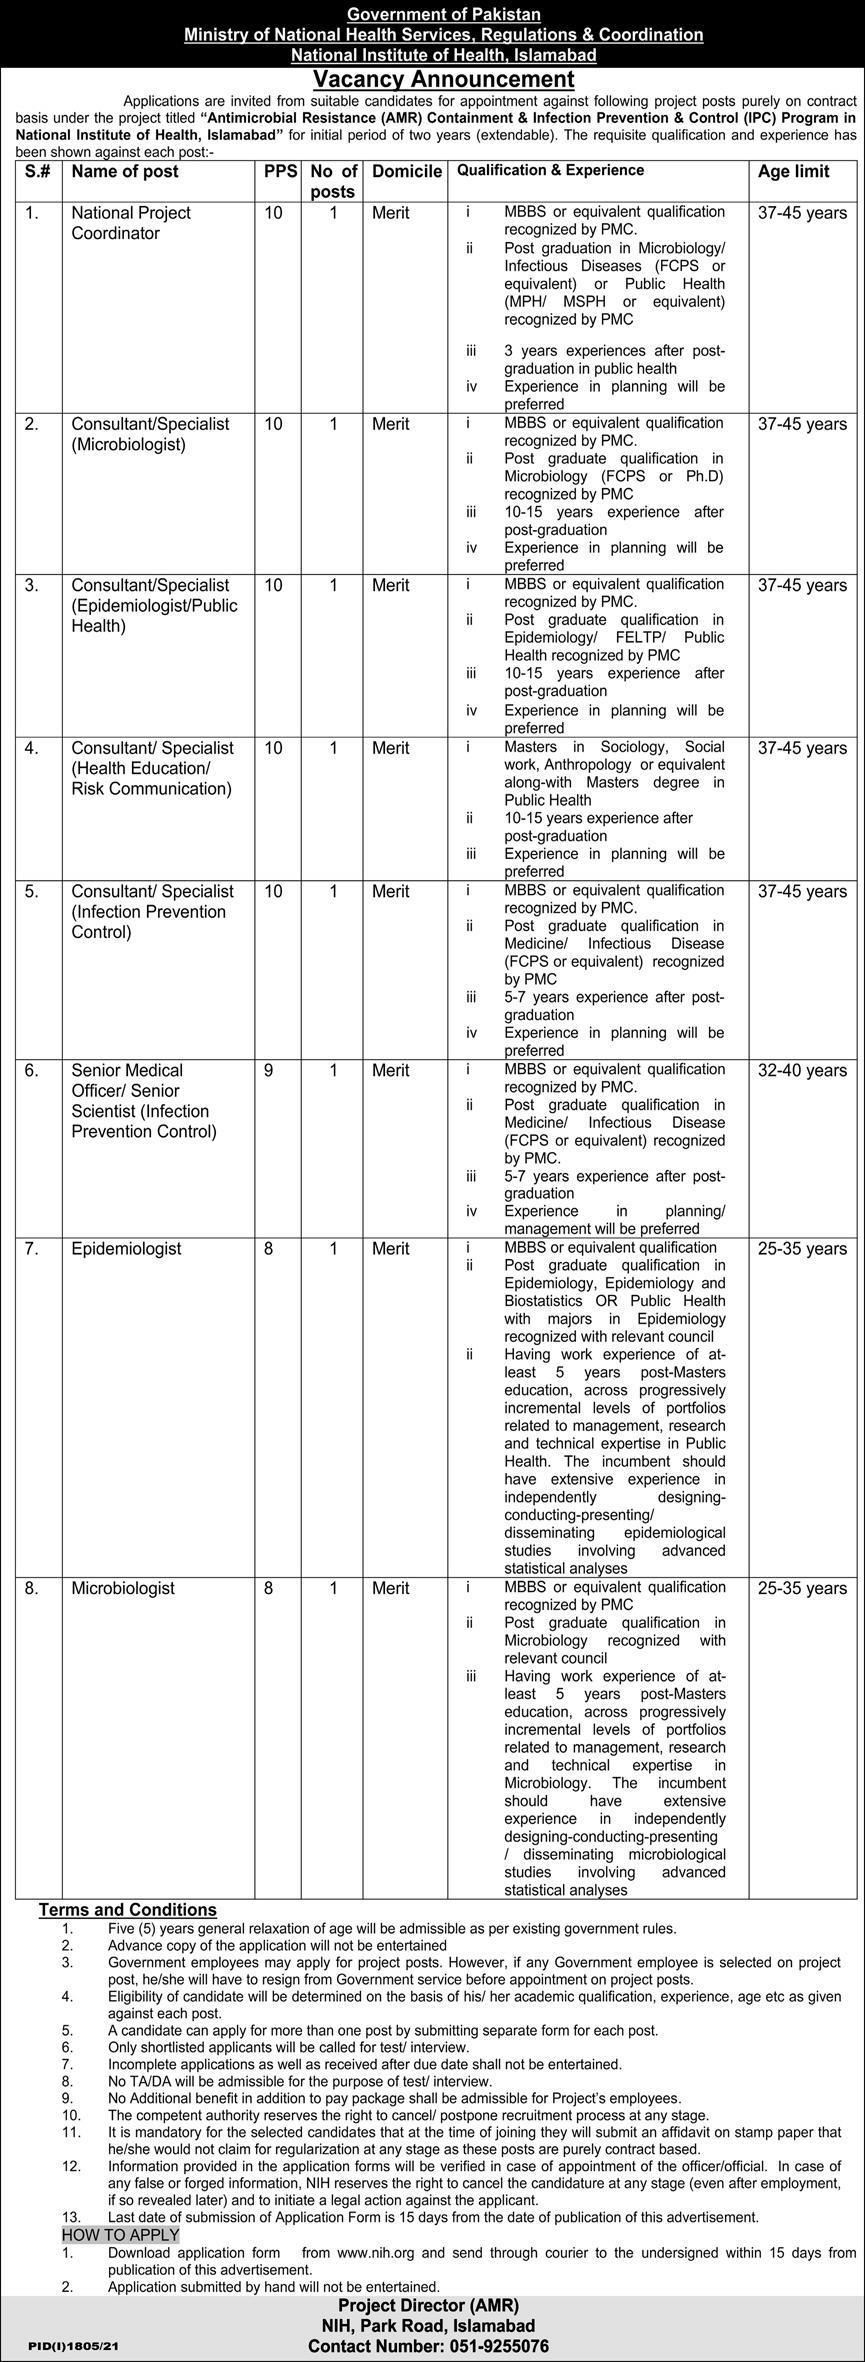 Ministry of National Health Services, Regulations & Coordination National Institute of Health Jobs 2021